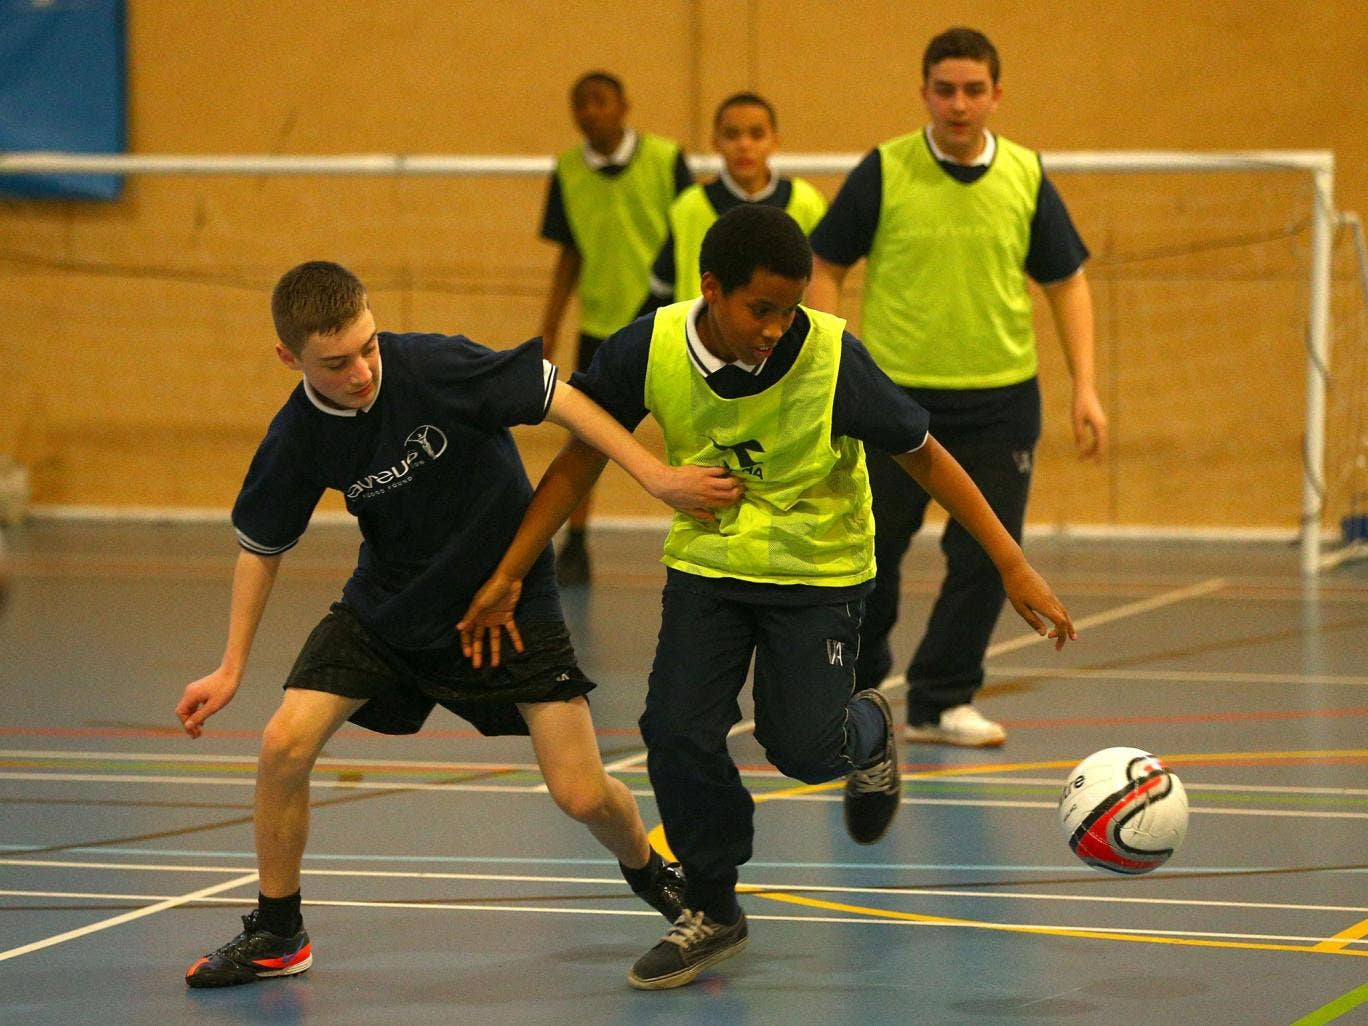 Only 13 per cent of state school heads insisted all pupils took part in competitive sports